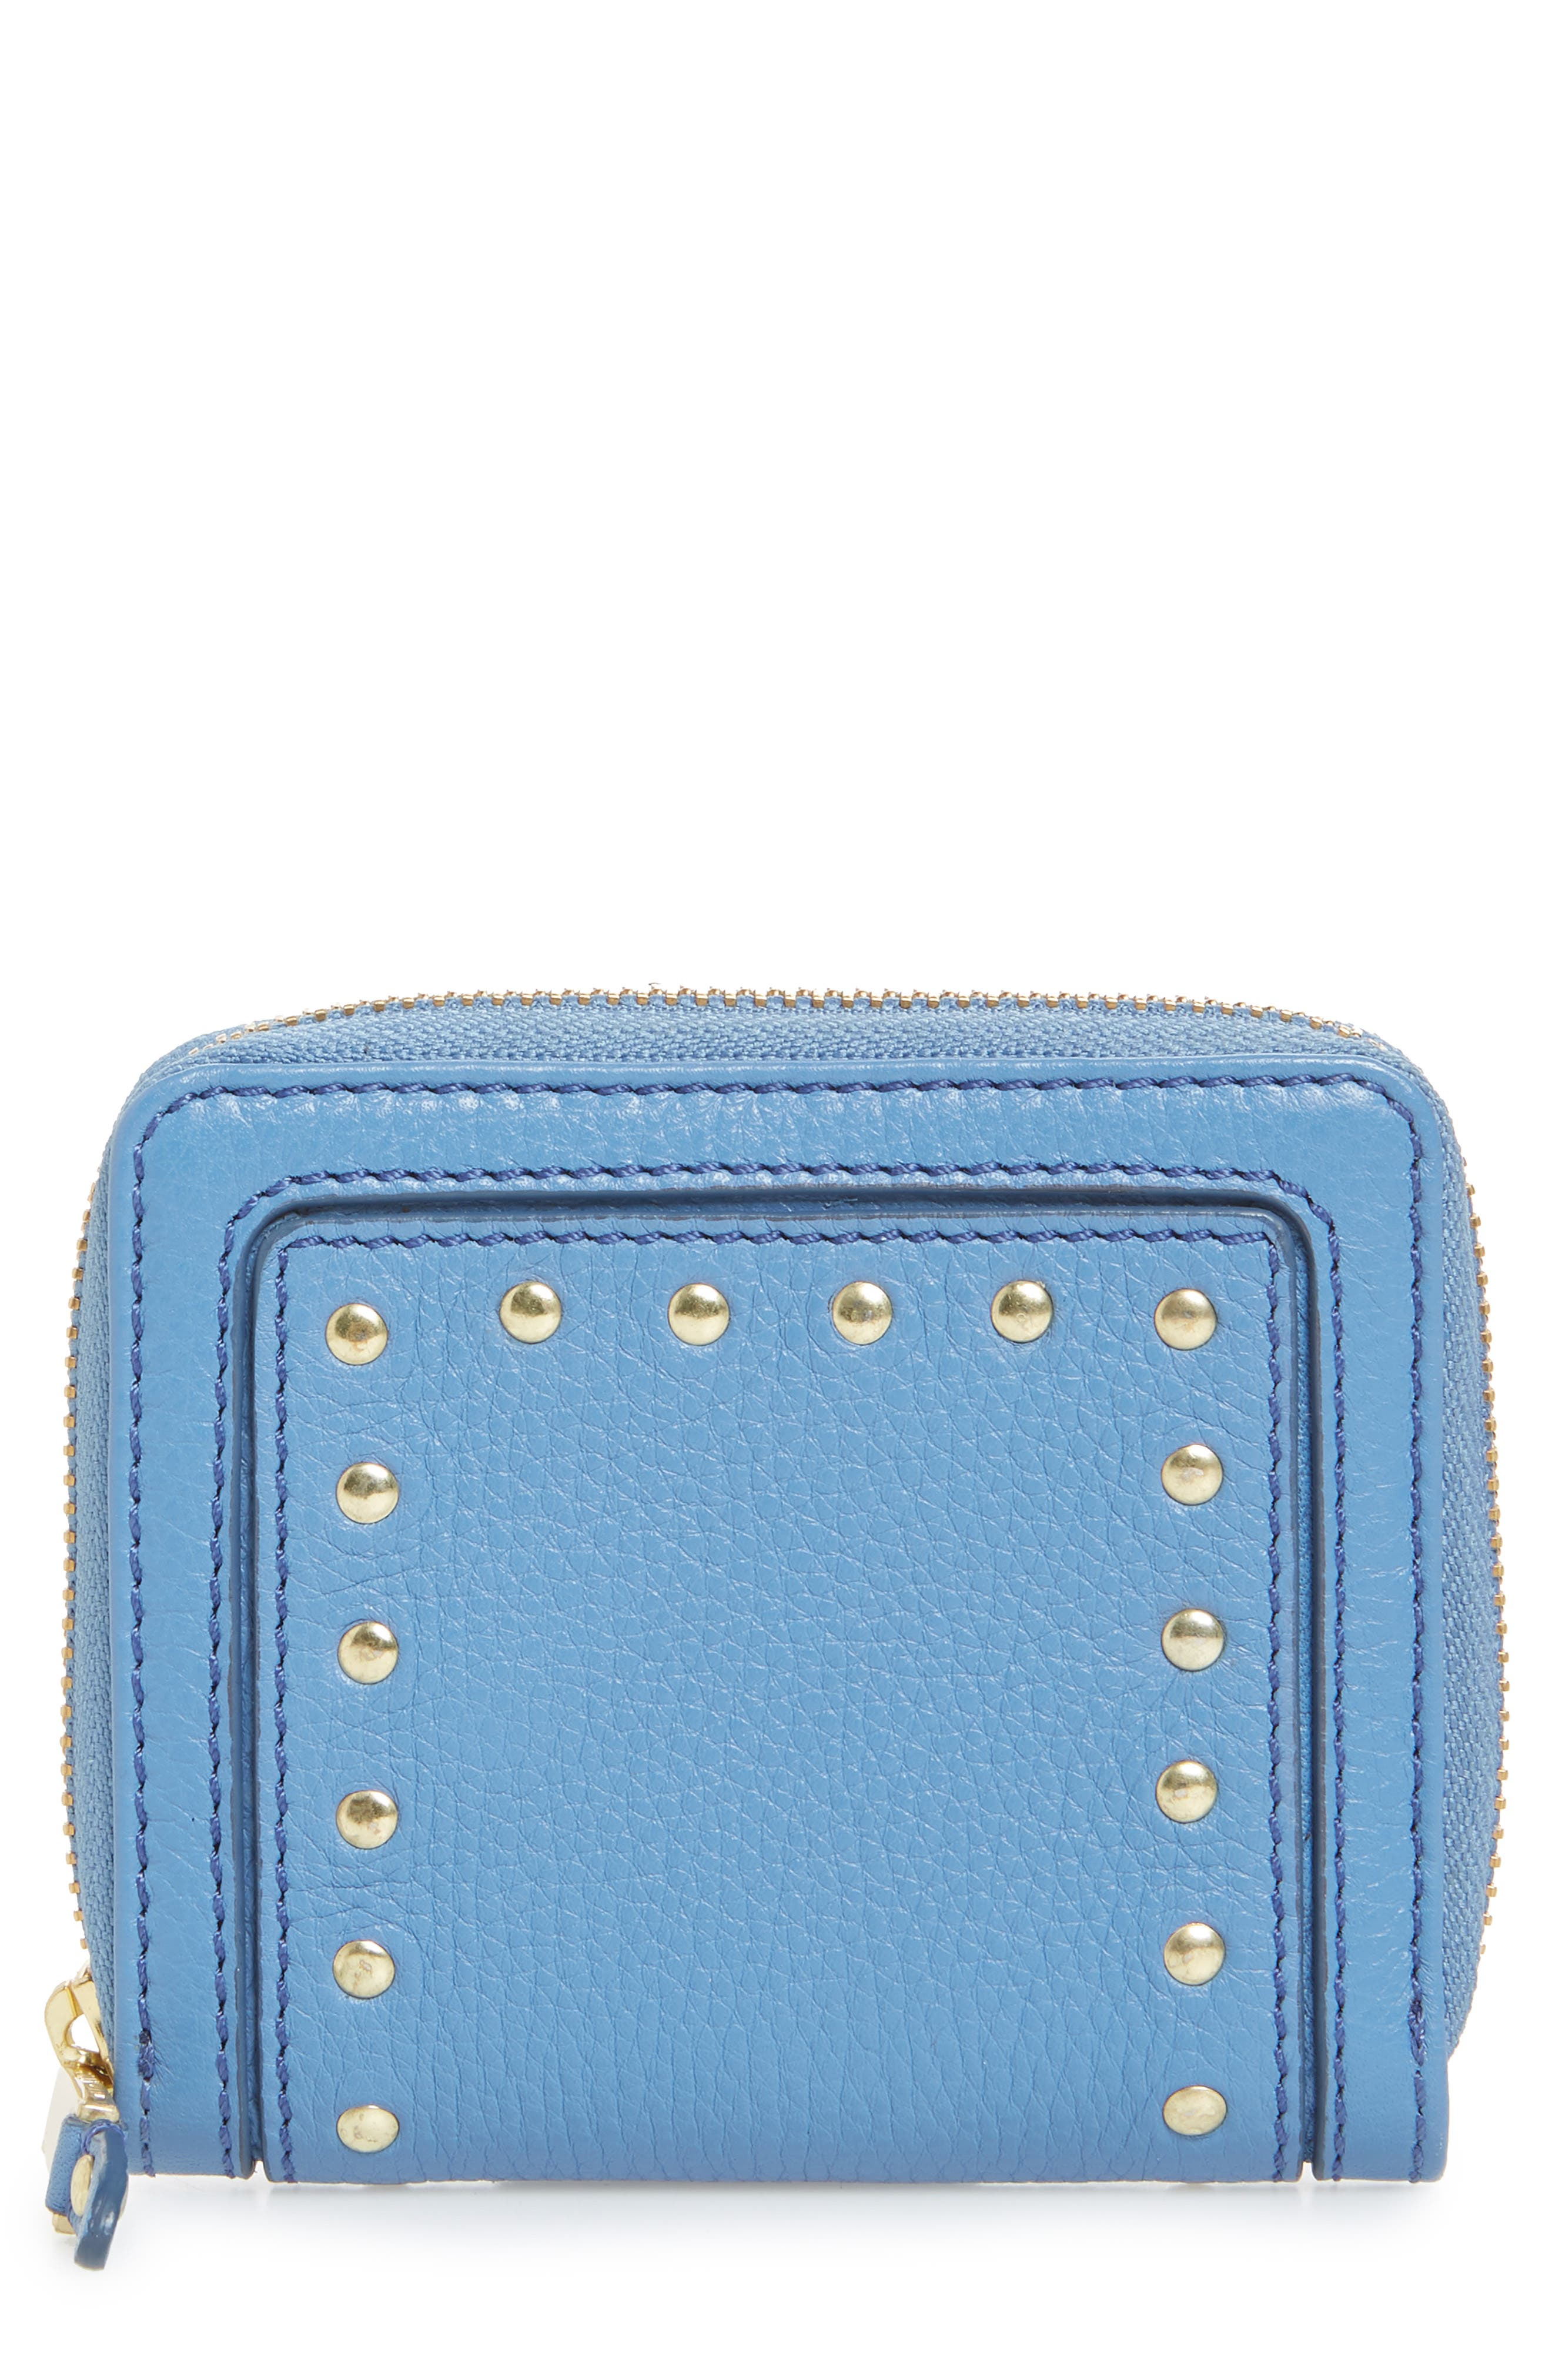 Cassidy Small RFID Leather Zip Wallet,                         Main,                         color, Riverside